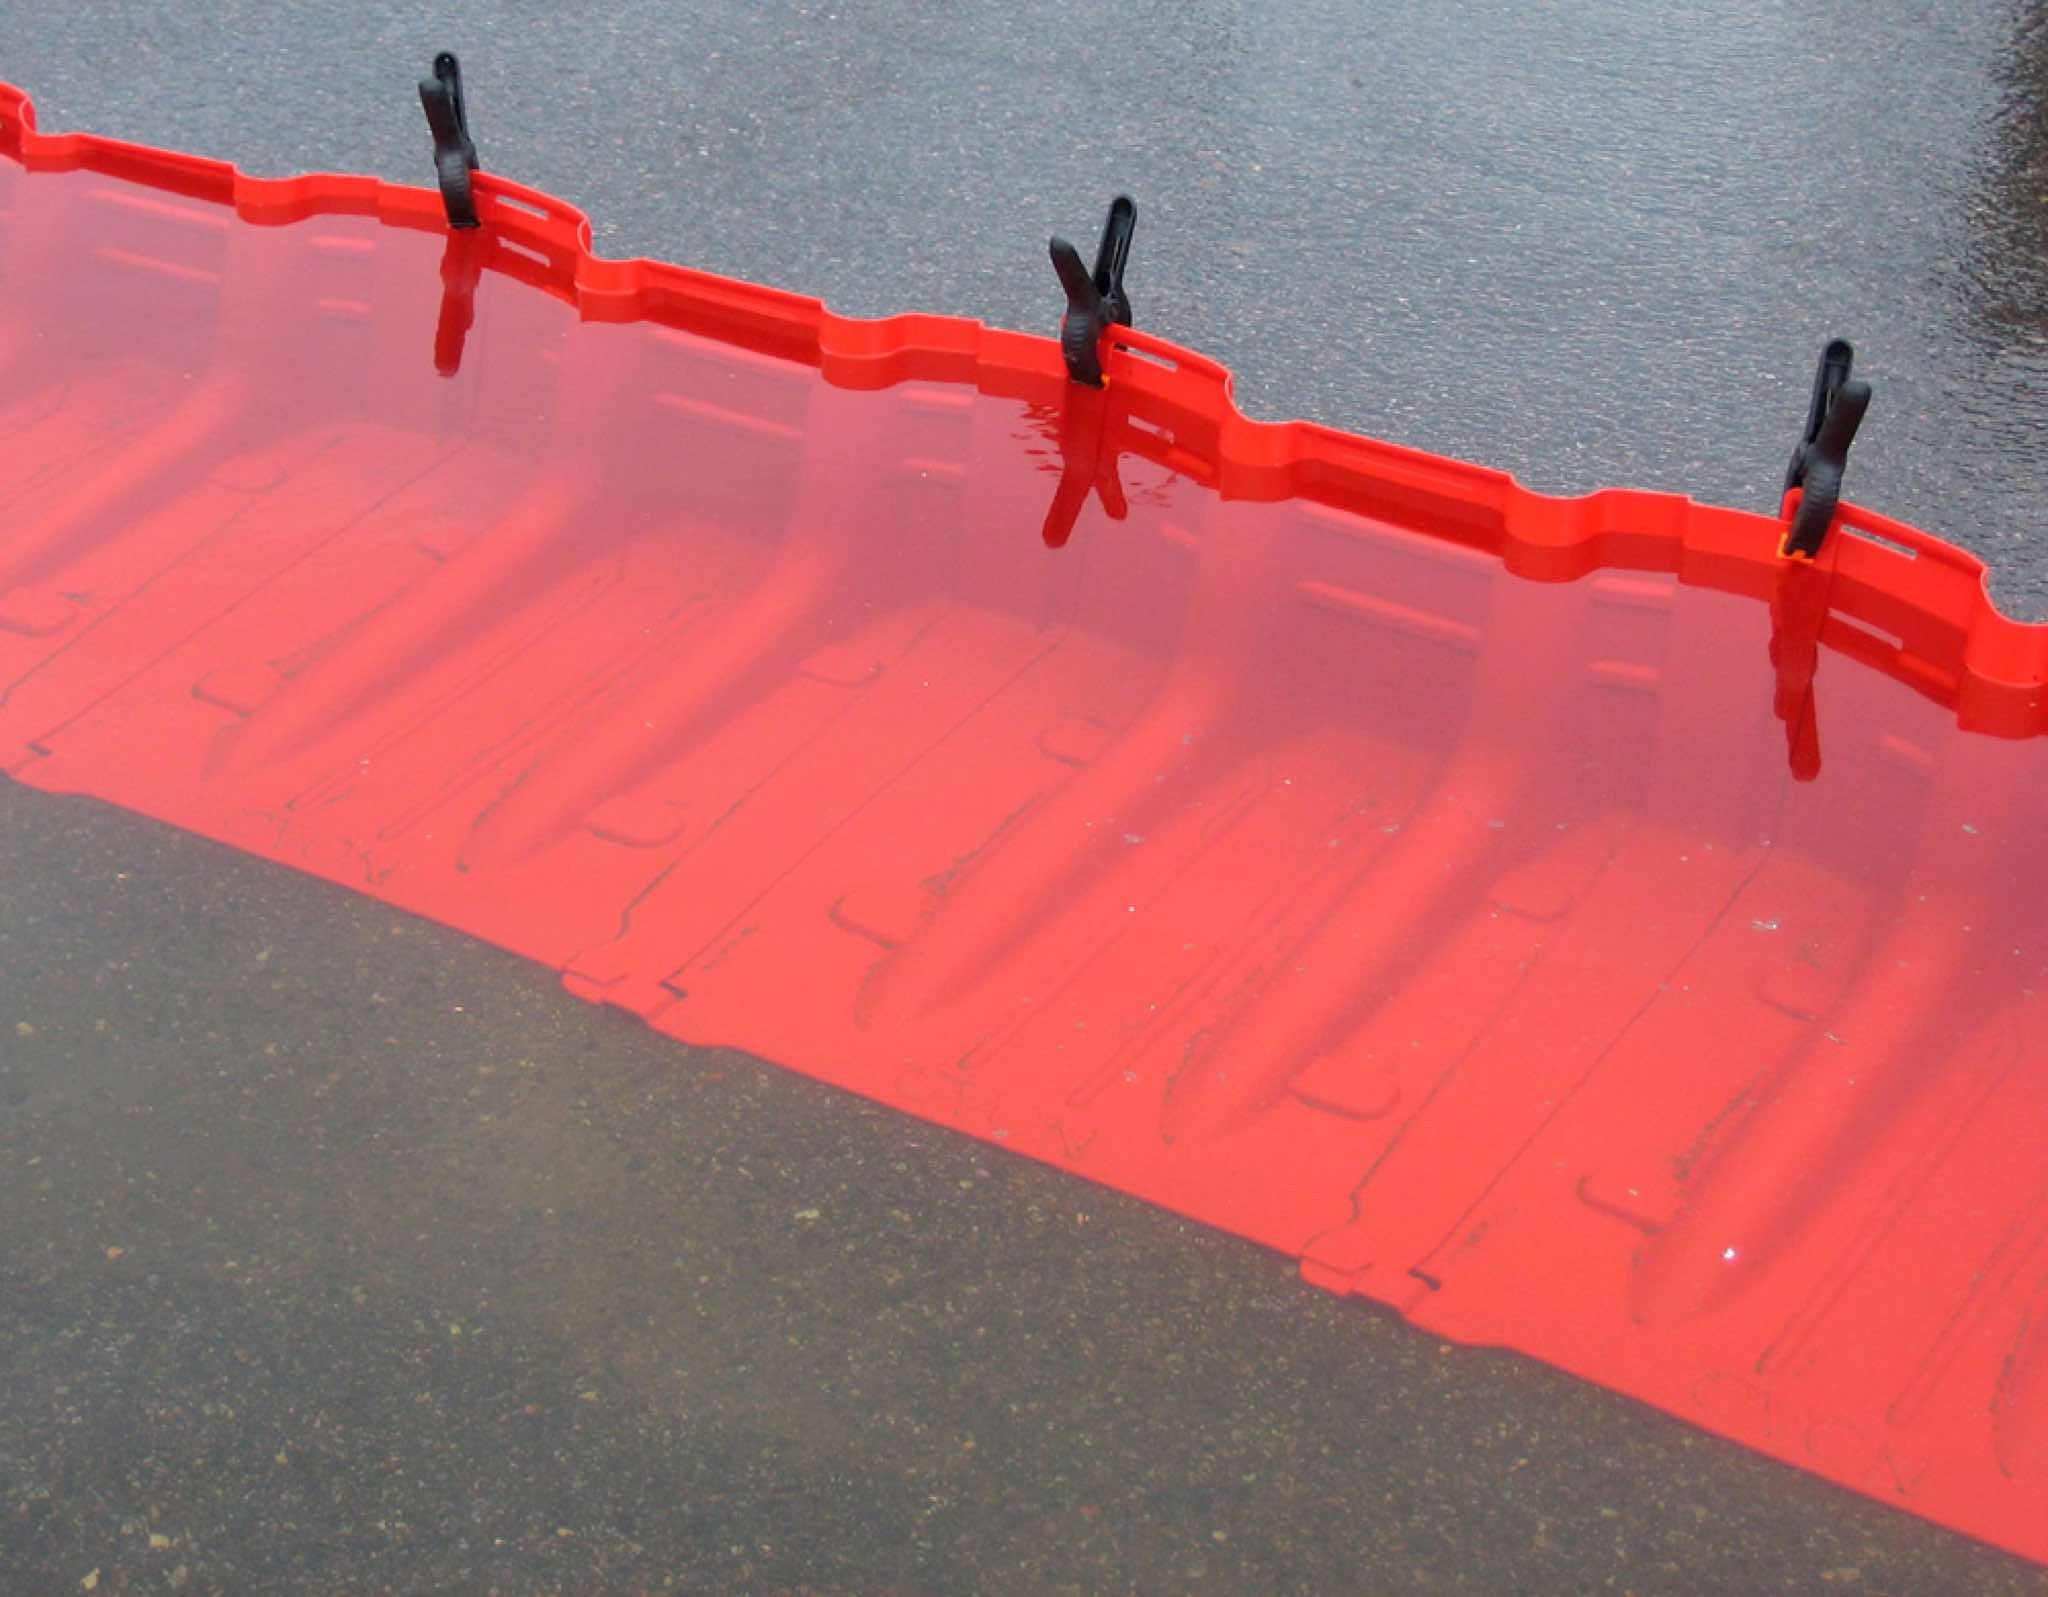 Freestanding temporary flood barrier designed for fast response to flood threats in an urban environment, on hard and even surfaces like tarmac, paving and concrete.